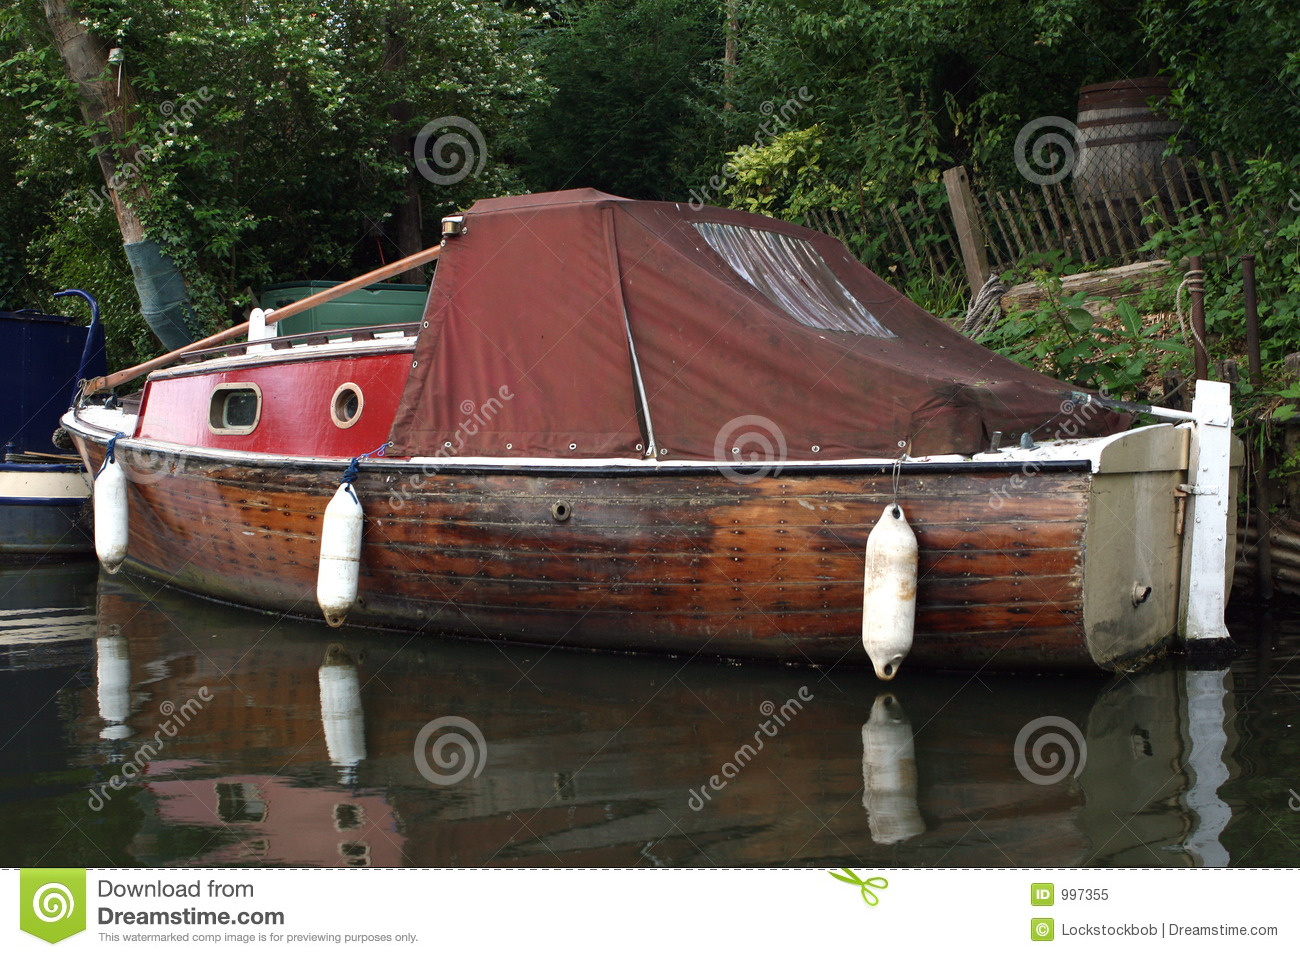 Small House Boat On River Royalty Free Stock Photo - Image: 997355